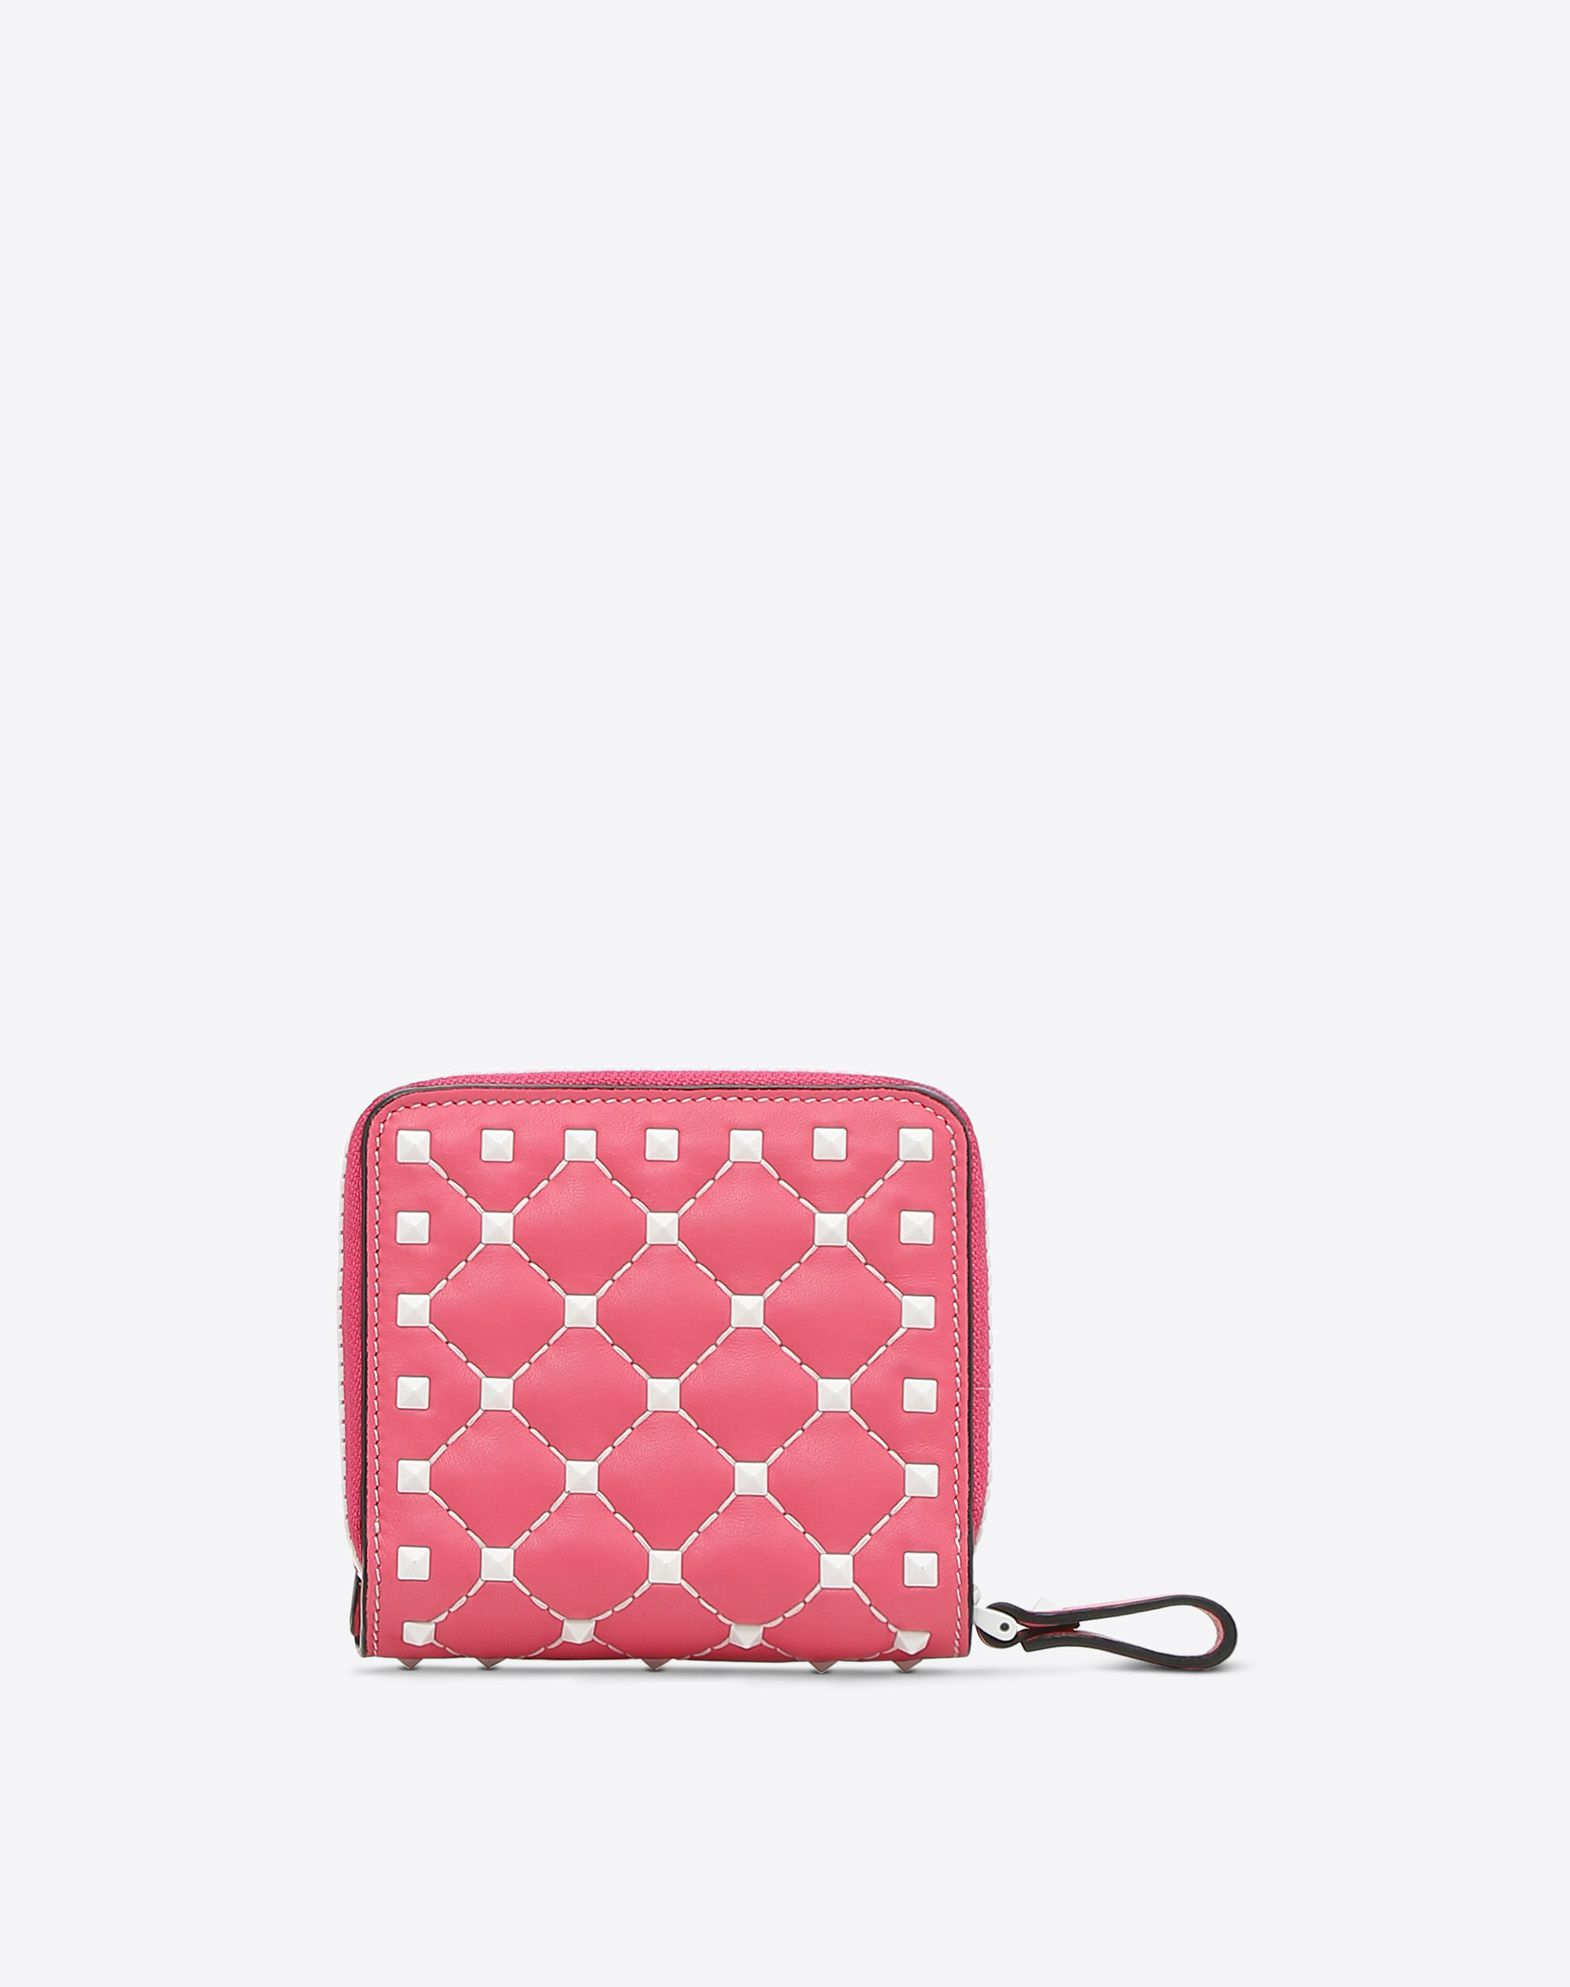 Valentino Valentino Garavani Free Rockstud compact wallet Buy Cheap Footlocker Pictures s4DpwW